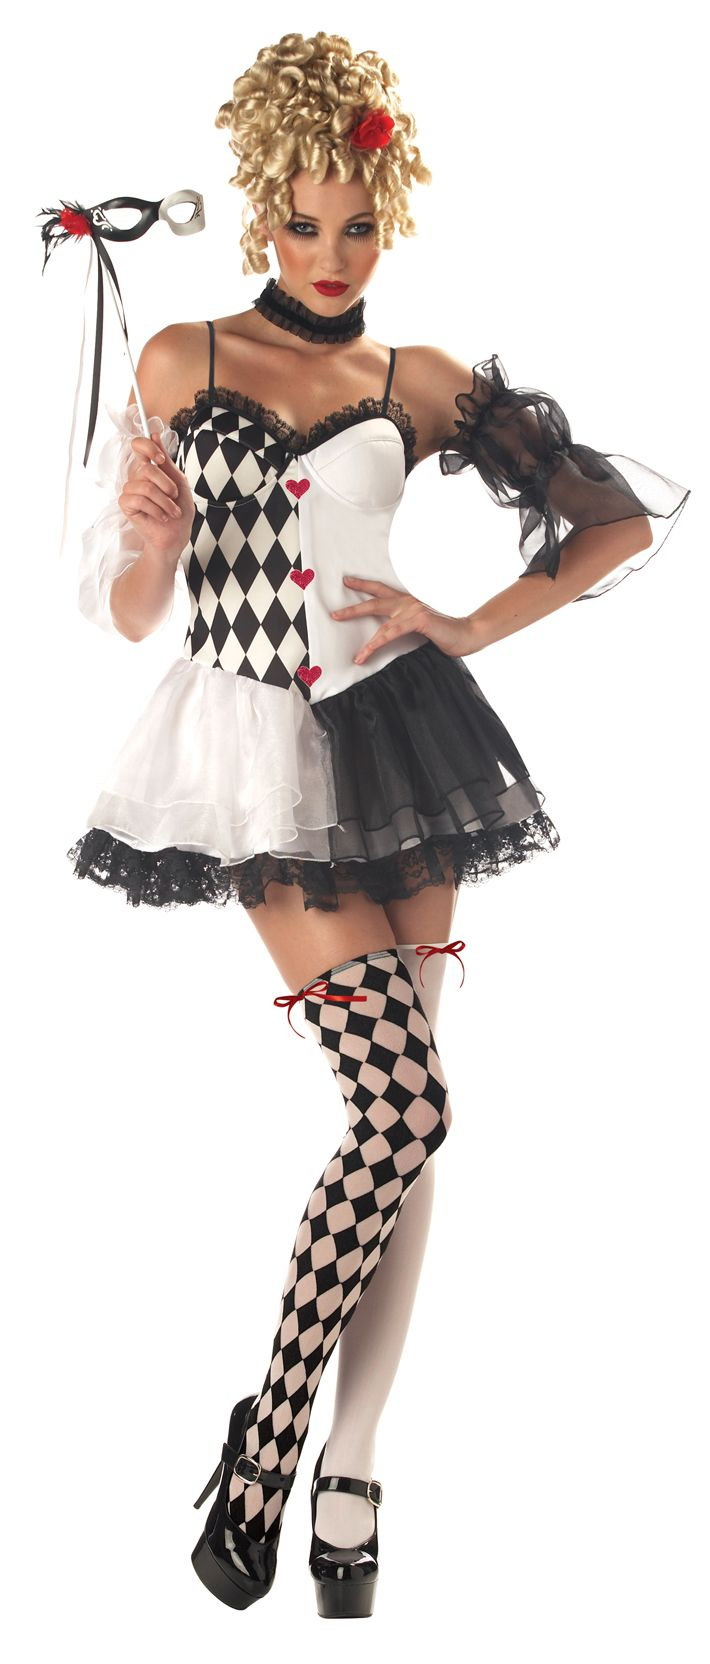 lebelle harlequin costume fantasypartys masquerade costumesclown costumeswoman costumeshalloween - Masquerade Costumes Halloween